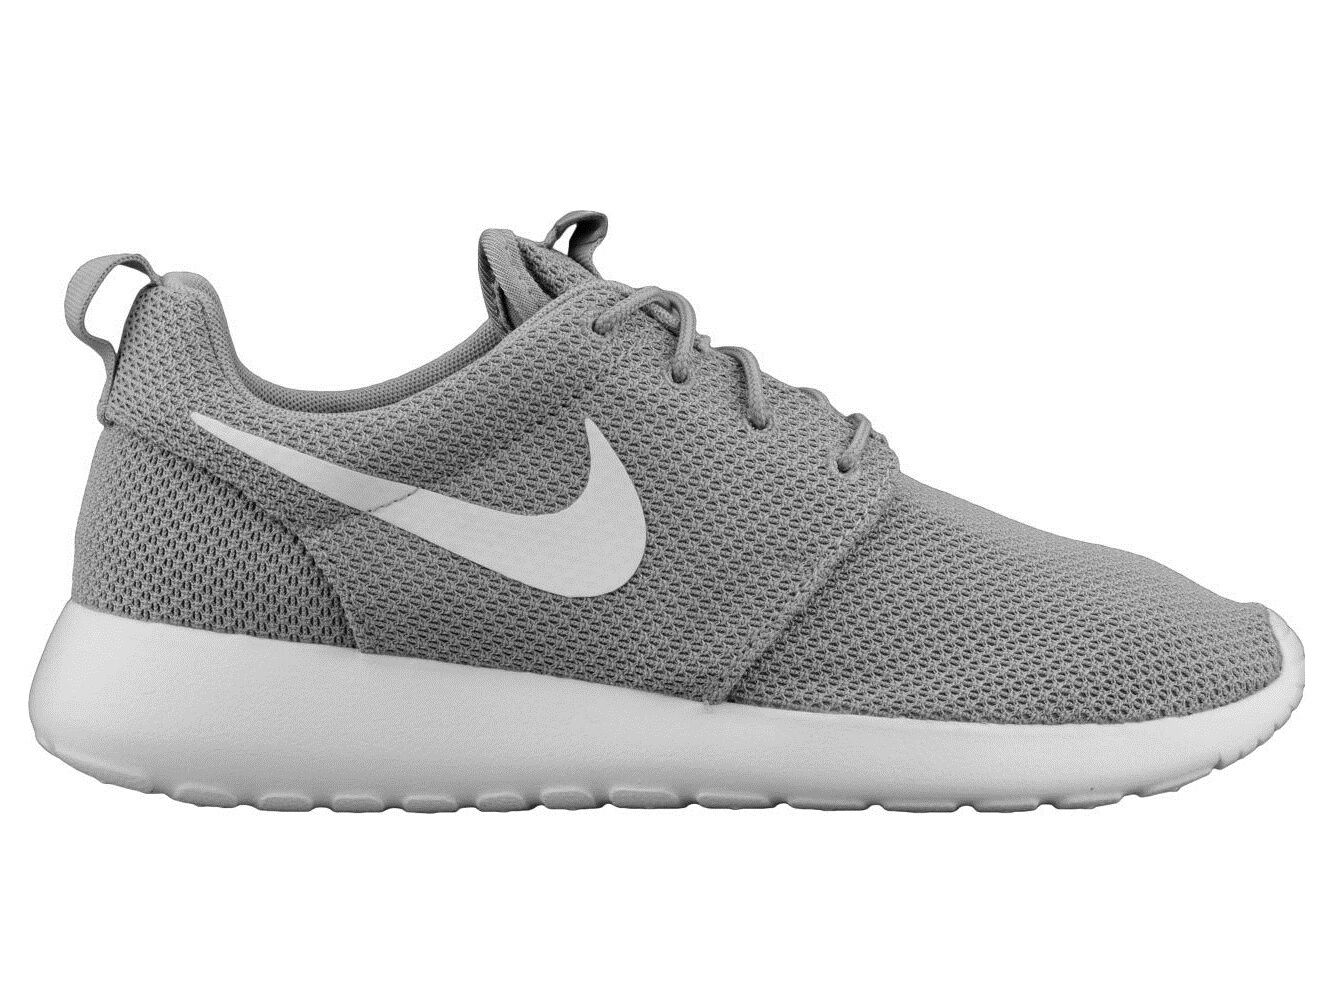 Nike Roshe One Mens 511881-023 Wolf Grey White Mesh Running Shoes Size 8.5